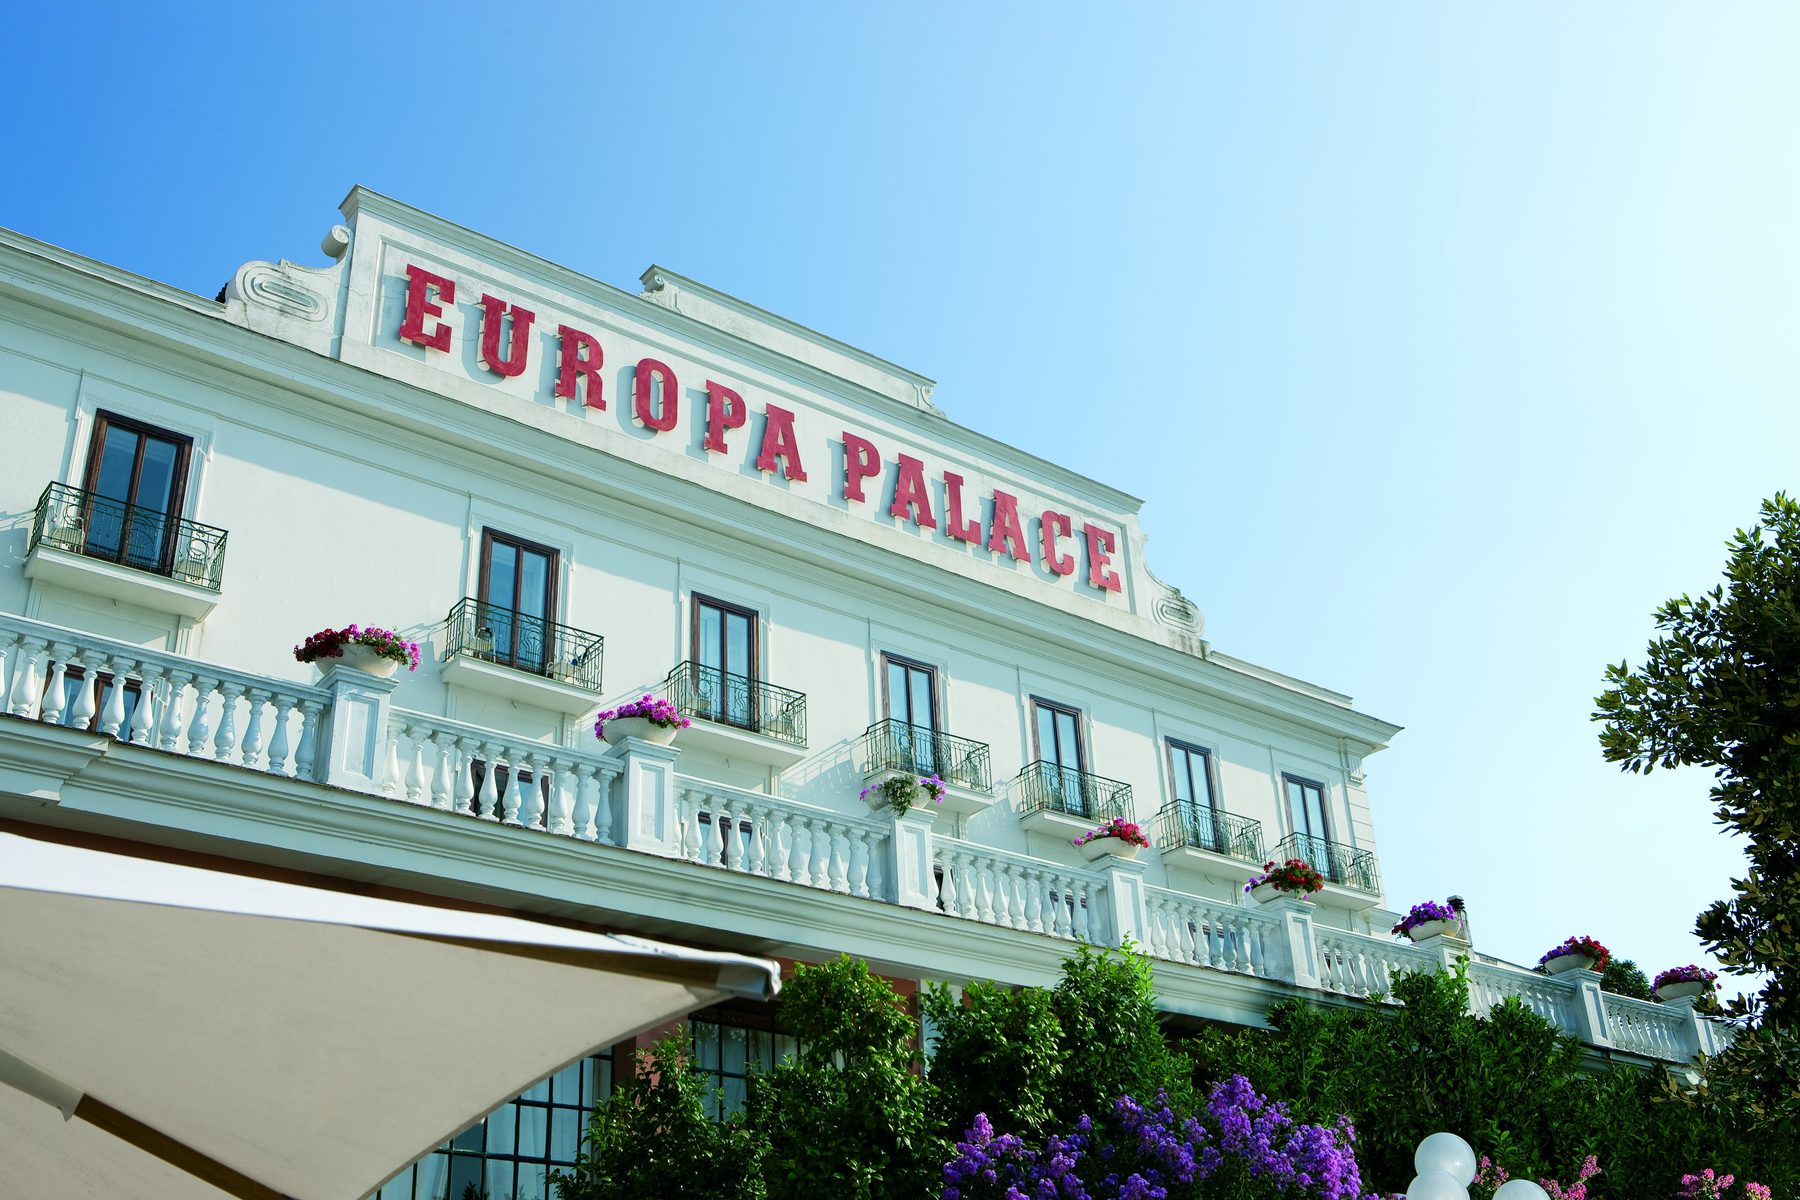 Grand Hotel Europa Palace - Spring 2022